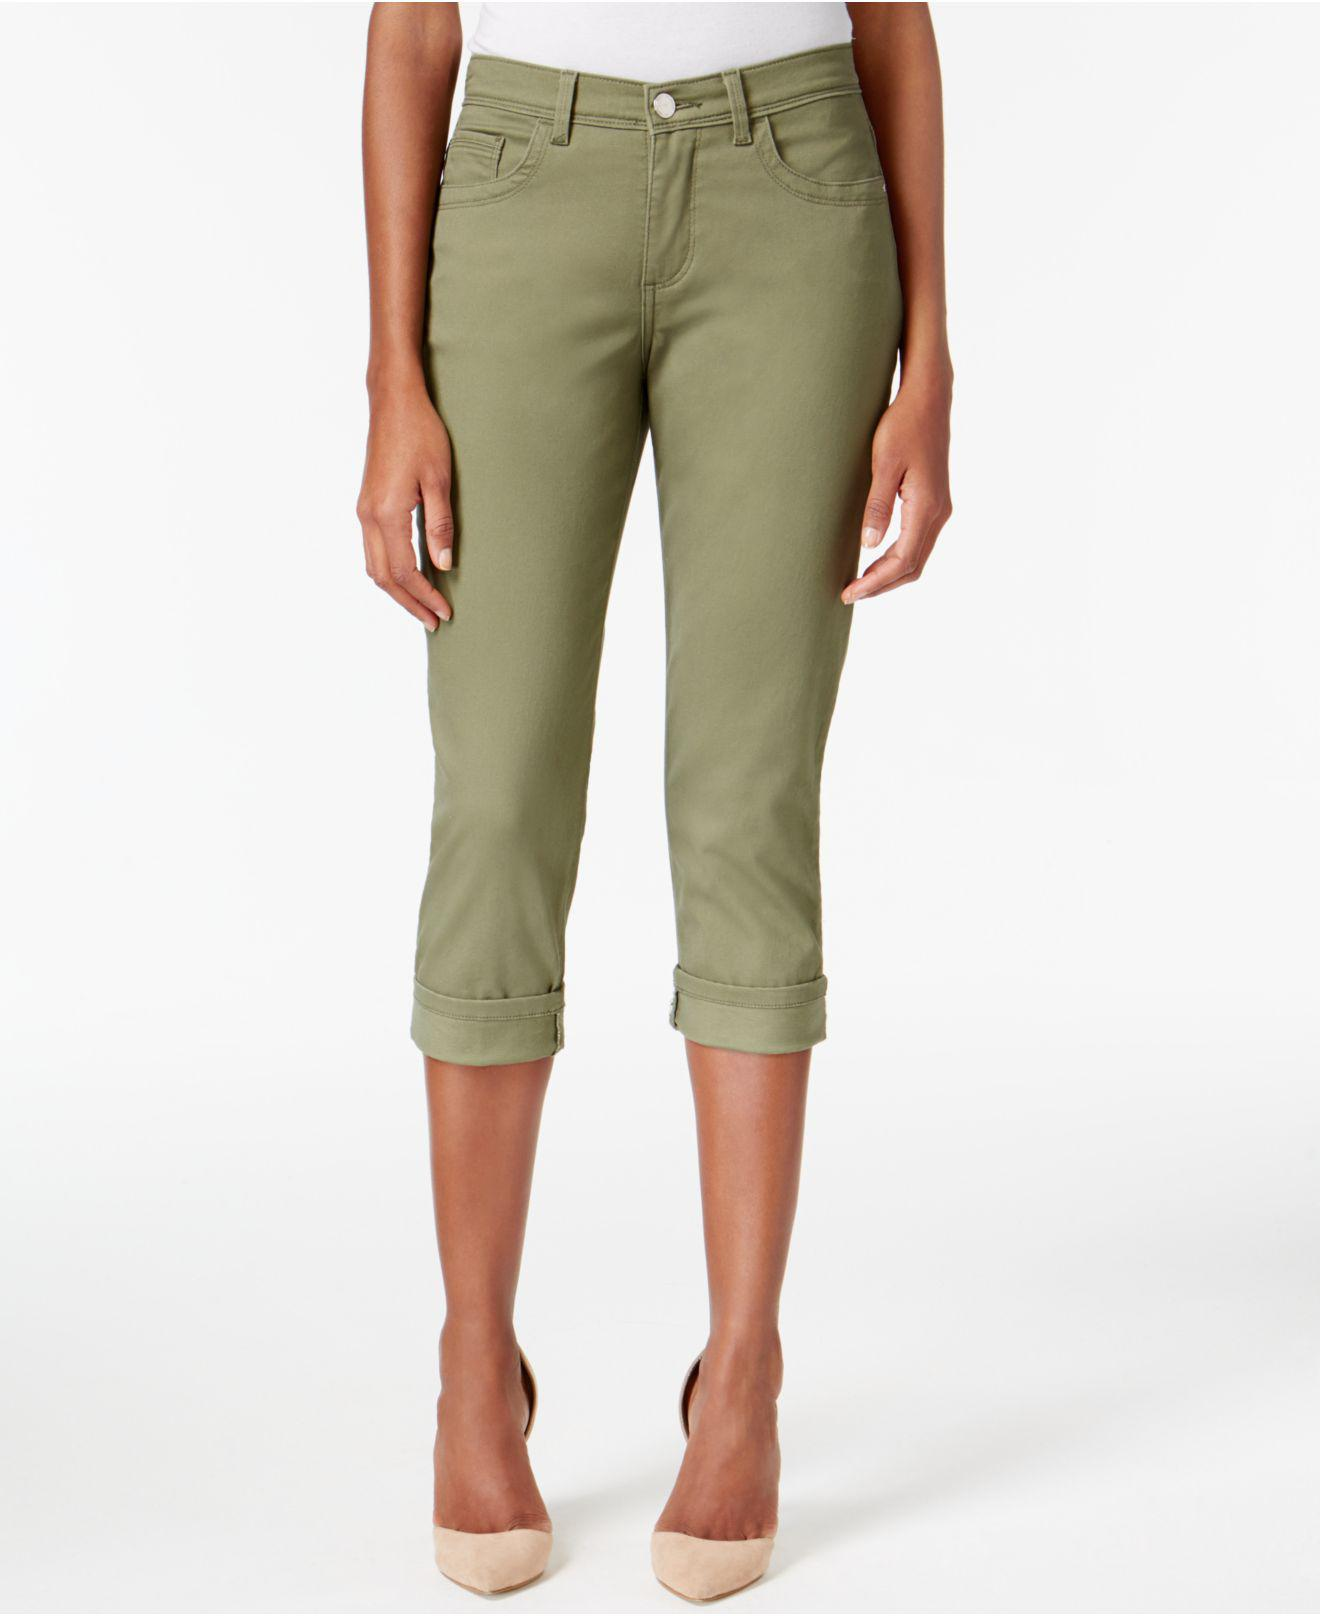 d08eef85 Lyst - Lee Platinum Petite Cameron Stretch Cropped Jeans in Green